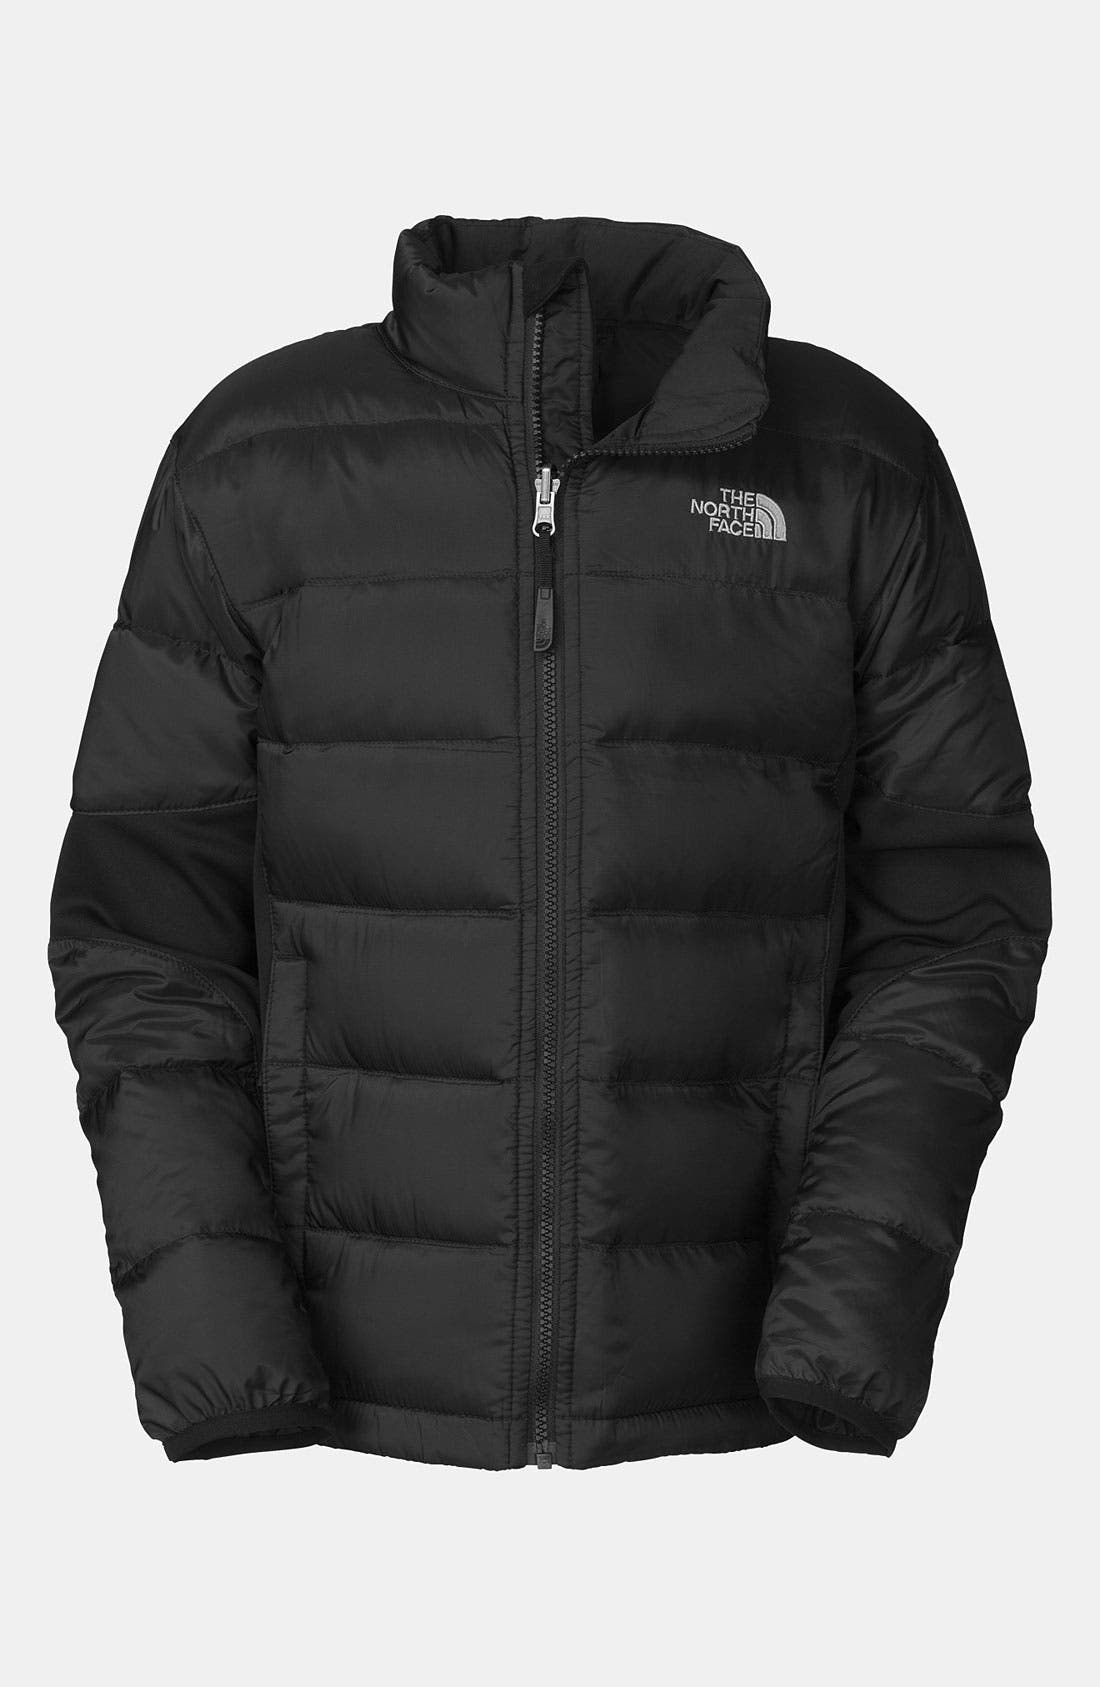 Alternate Image 1 Selected - The North Face 'Lil' Crympt' Down Jacket (Big Boys)